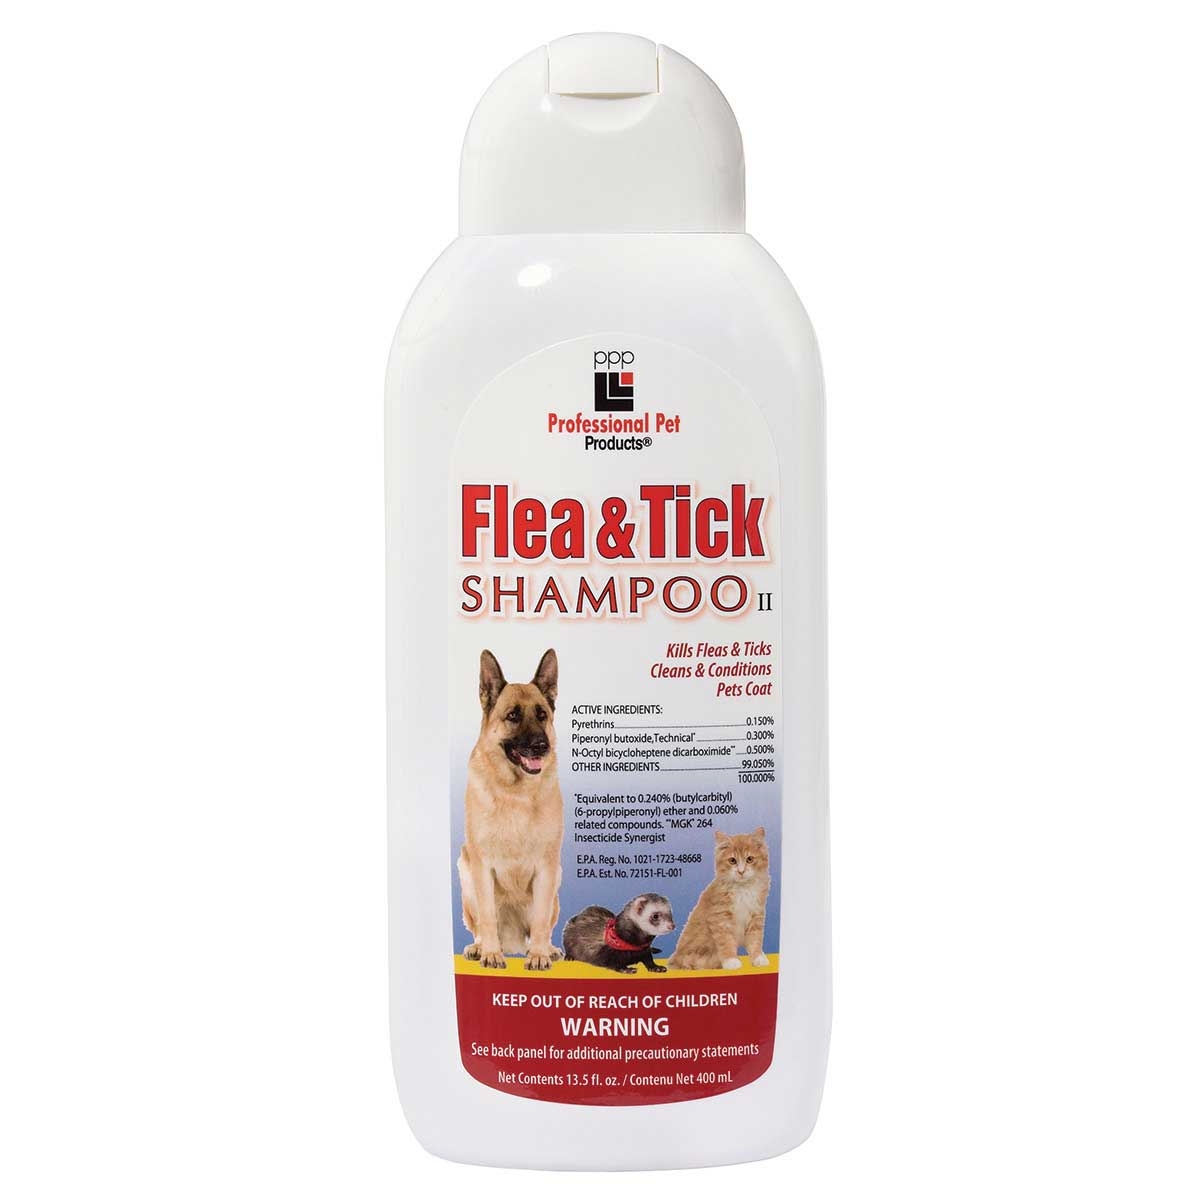 Professional Pet Products Flea & Tick 12:1 Shampoo for Dogs and Cats 13.5 oz